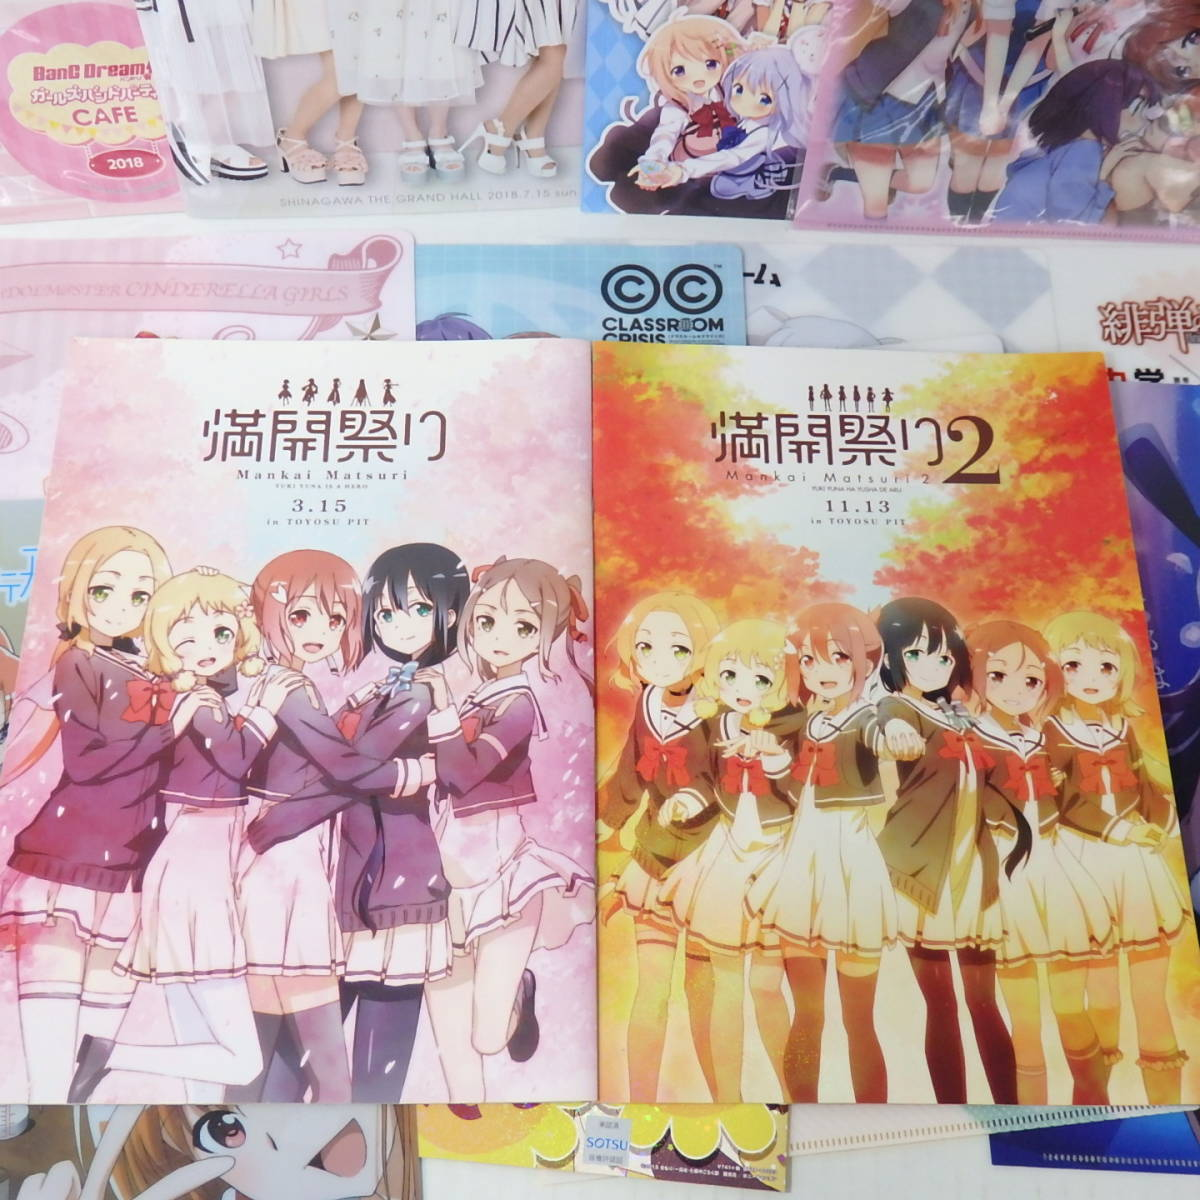 200a607★美少女 クリアファイル パンフレット 等 まとめ売り セット★IDOLM@STER バンドリ 結城友奈は勇者である 等 ☆中古品☆_画像7